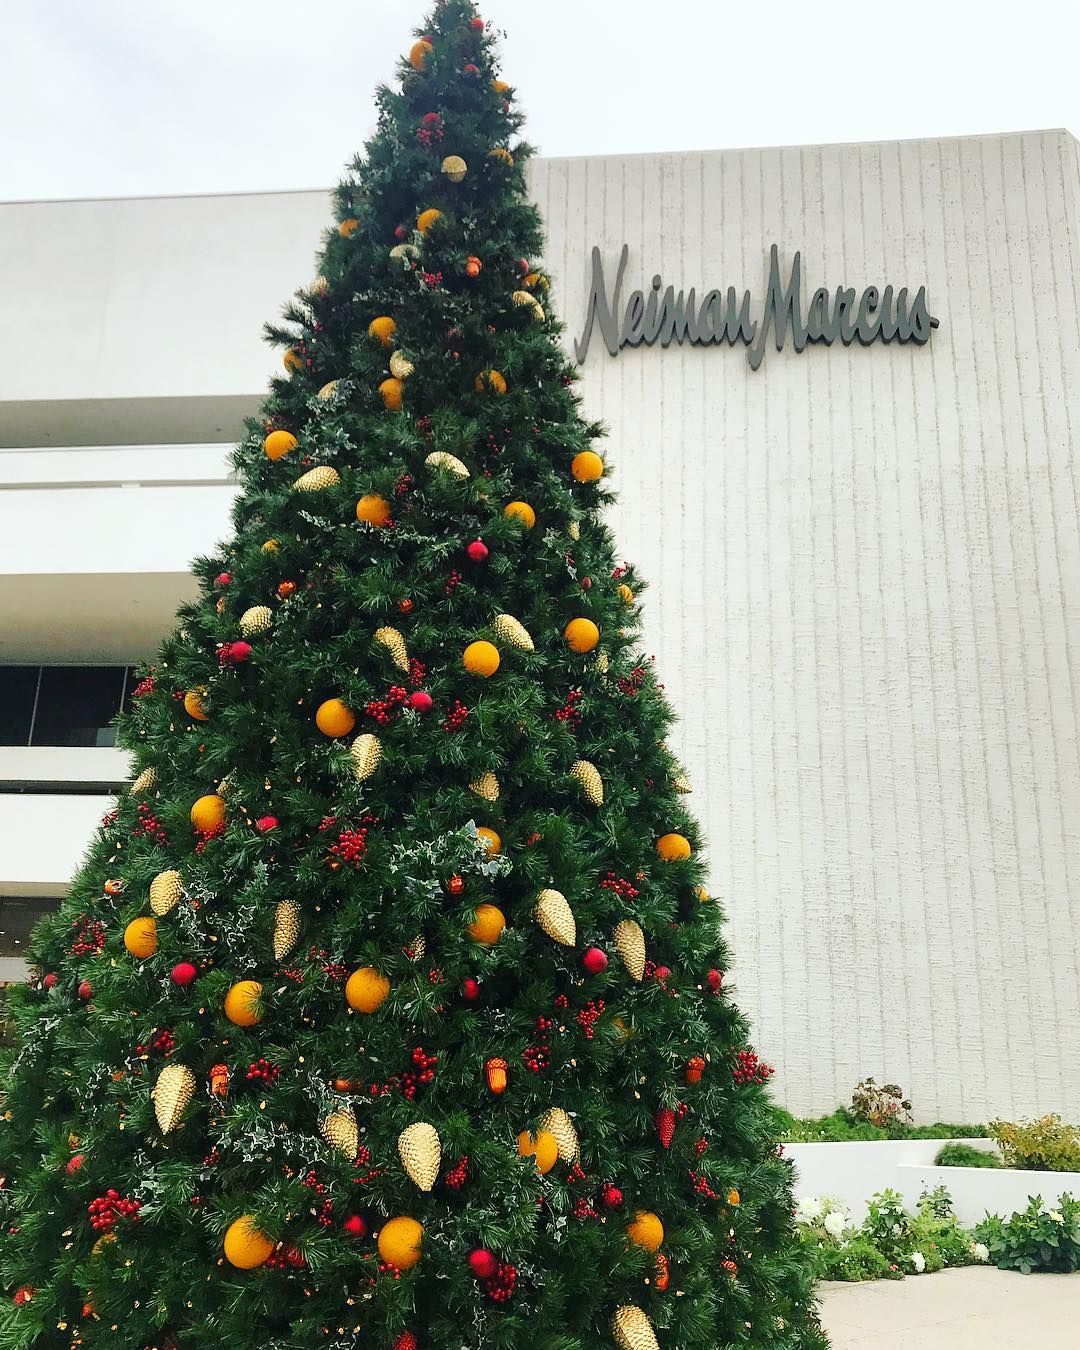 Neimanmarcus Christmas.Giant Christmas Tree Outside Of Neiman Marcus Store At